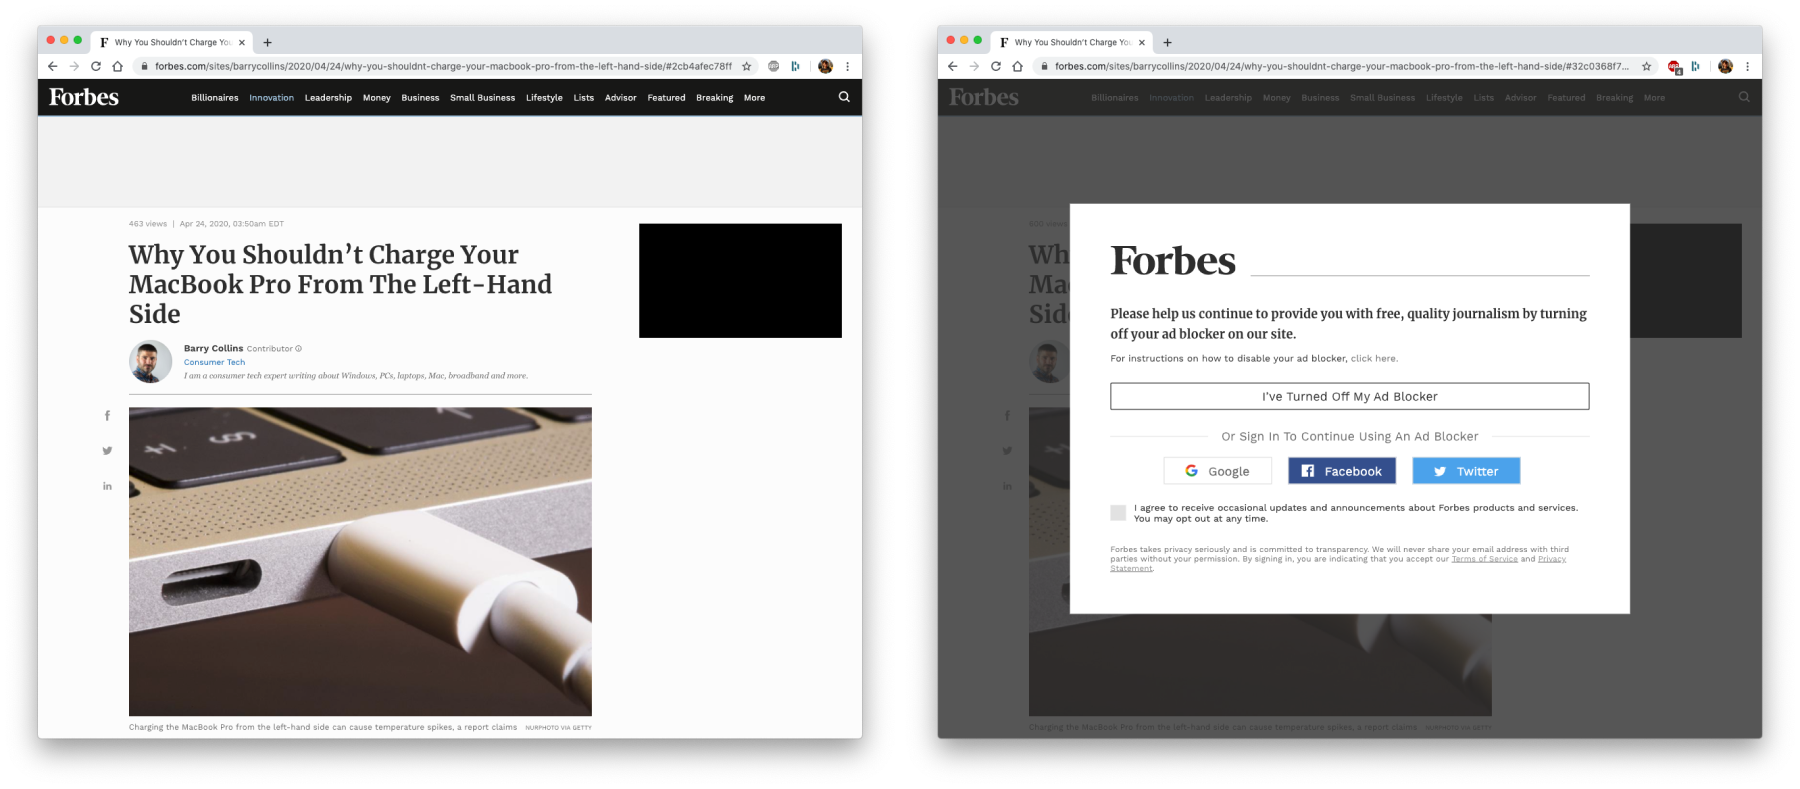 The same page viewed using AdblockerPlus and Pi-hole